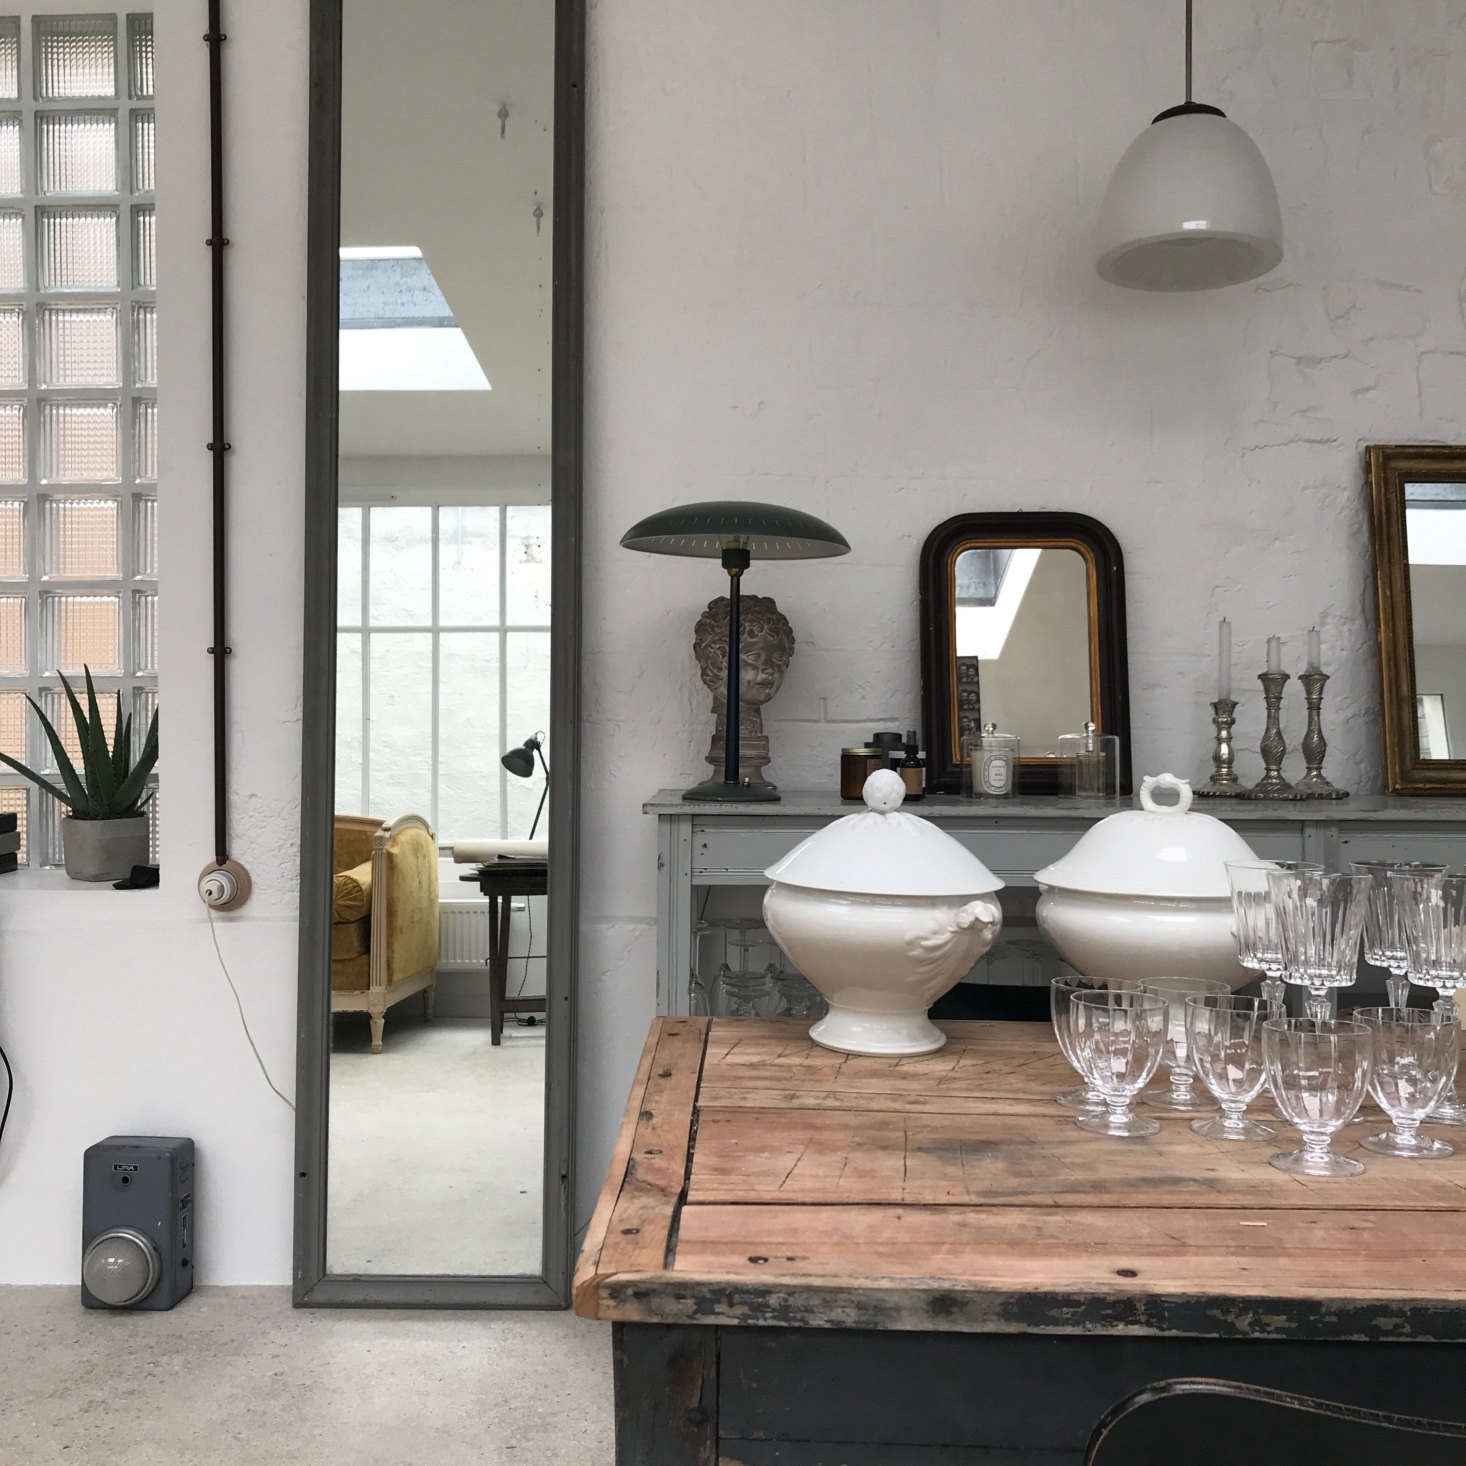 Another favorite in Reims: Brice Bérard Antiques and Les Pénates Reims, with mirrors, furniture, and vintage lighting sourced by partners Brice Bérard and designer Annabelle Brun. (&#8